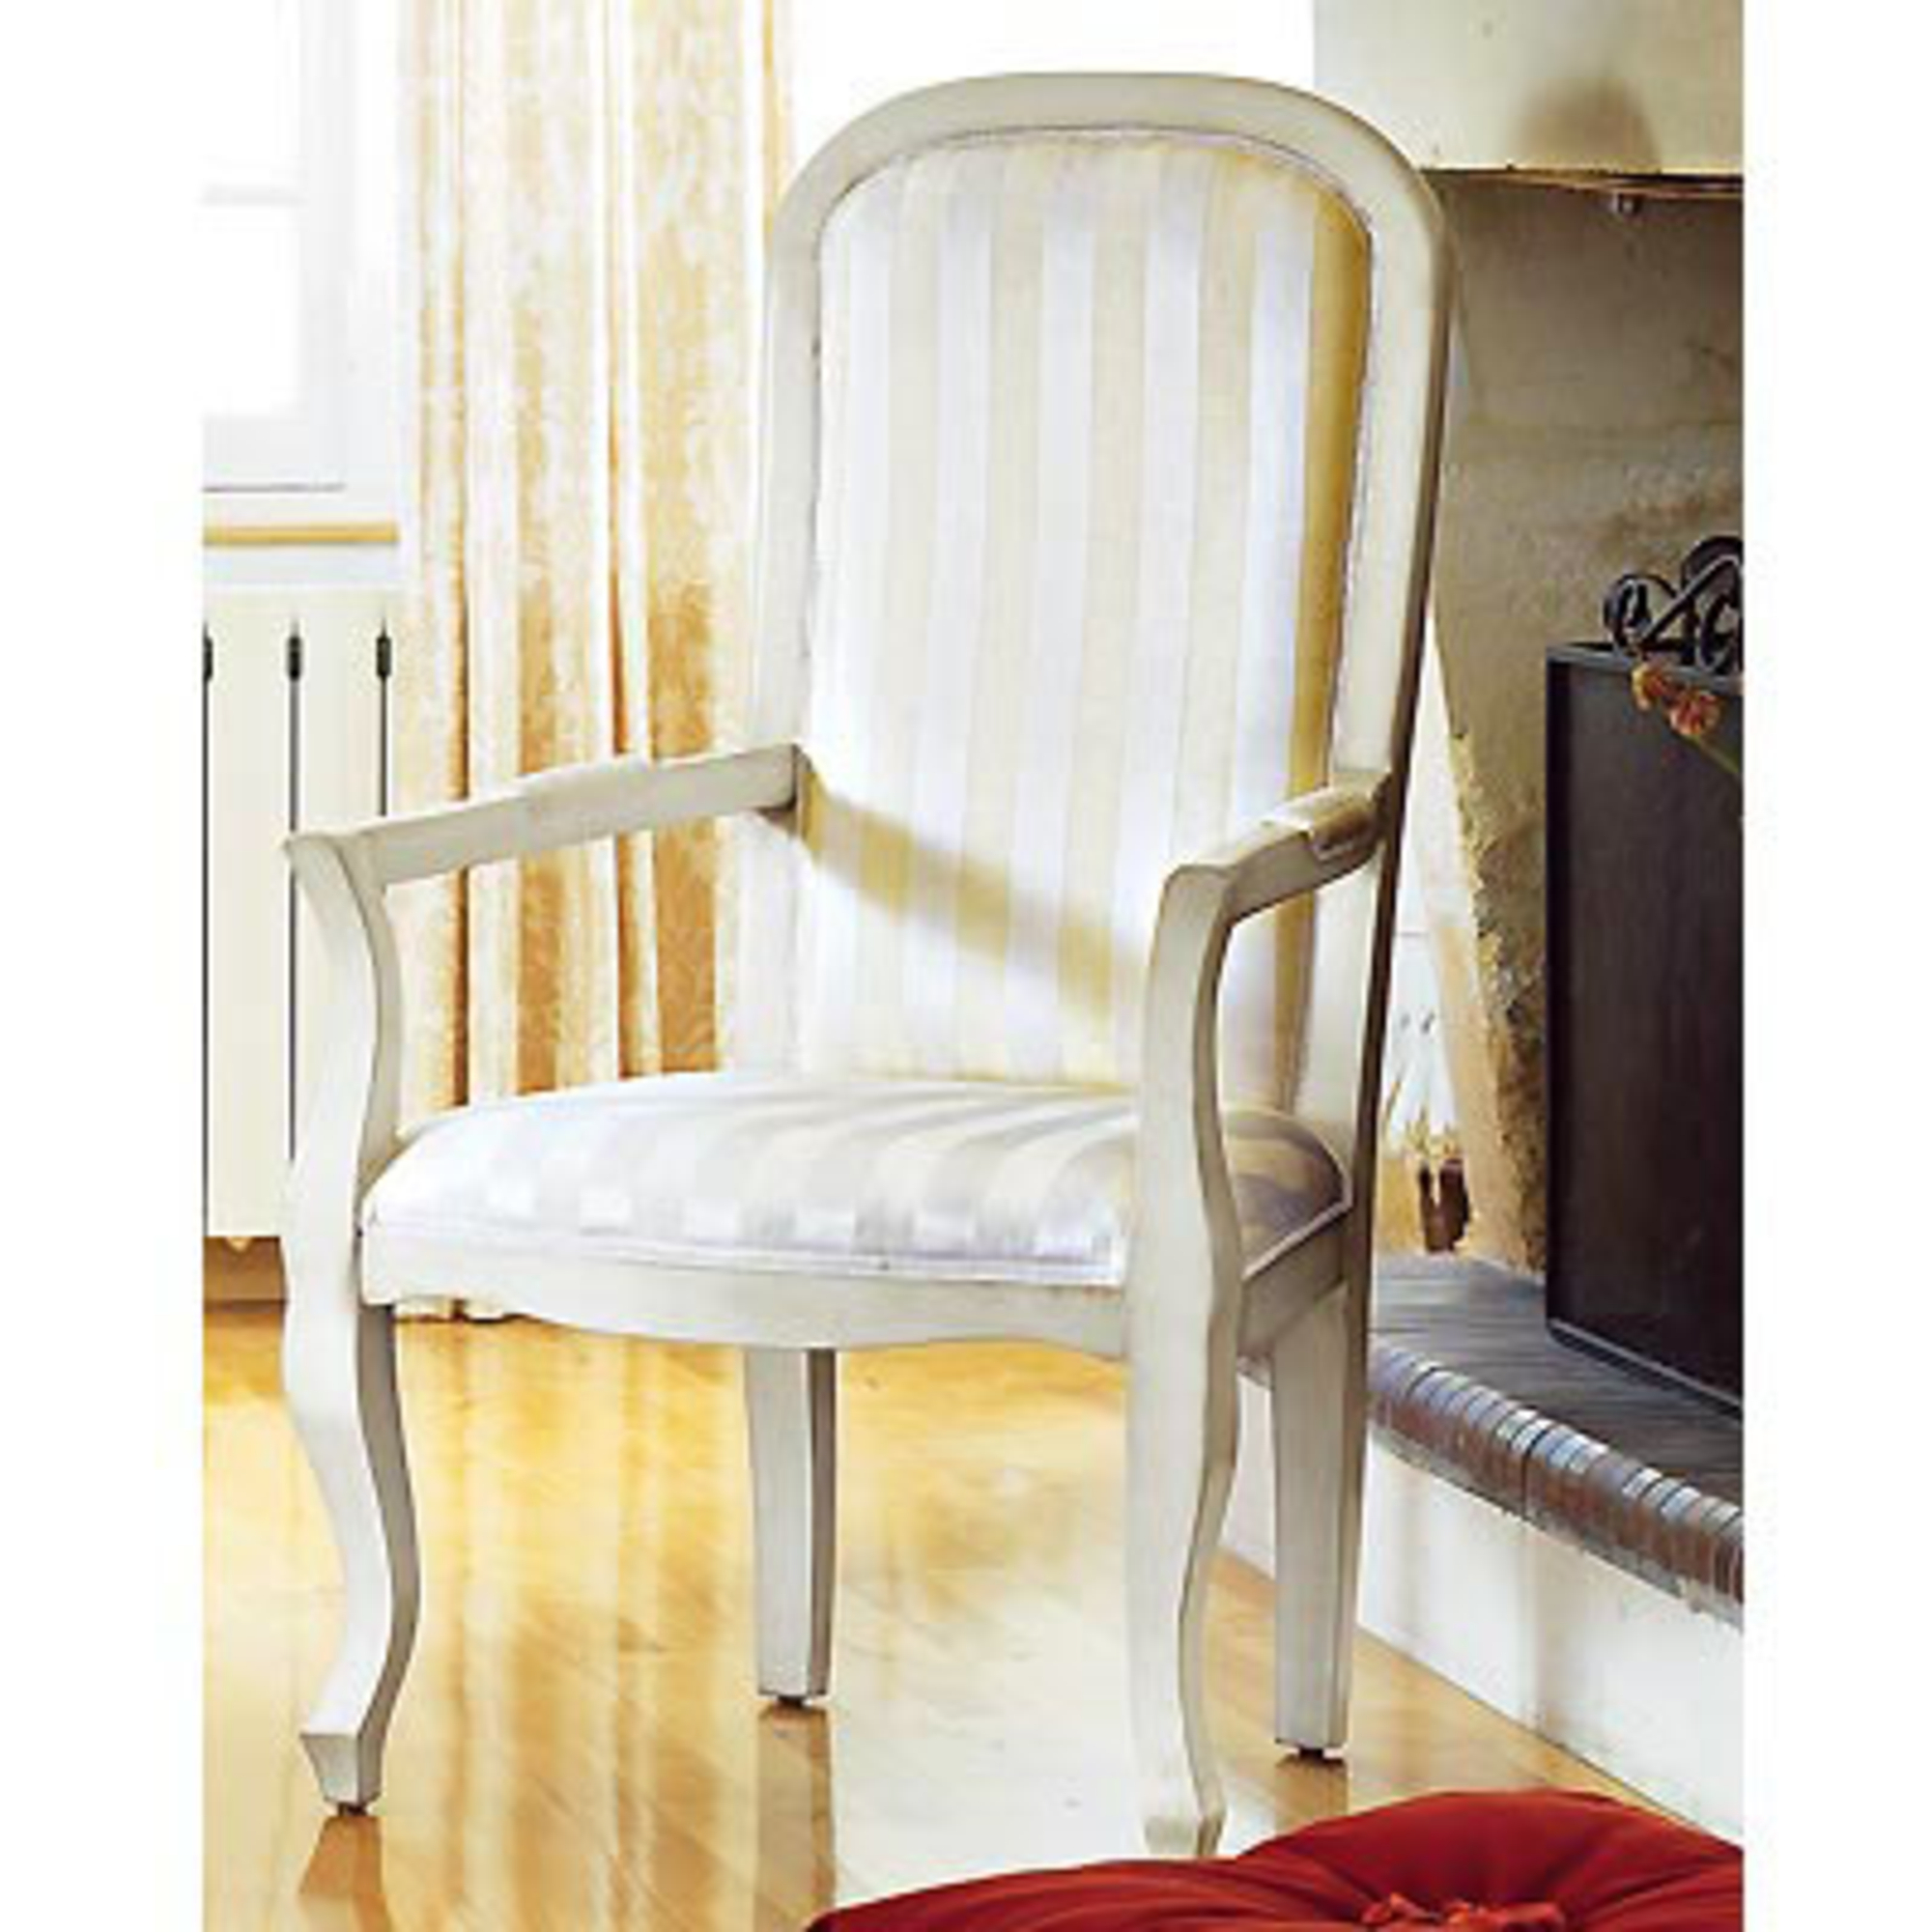 Fauteuil voltaire arcadie blanc ray anniversaire 40 ans acheter ce pro - Fauteuil voltaire blanc ...